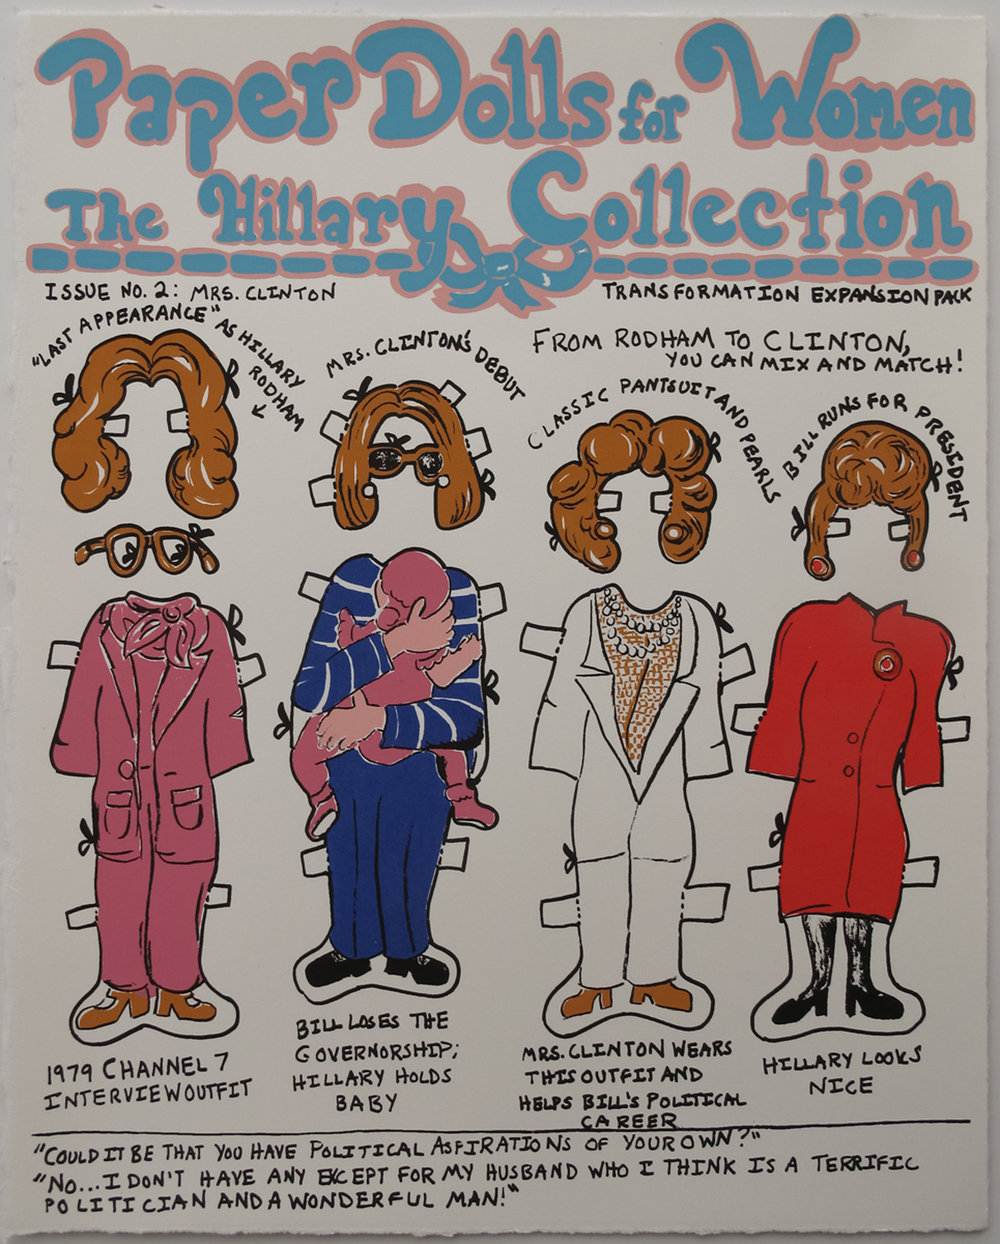 Nicole Soley, Paper Dolls for Women: The Hillary Collection, Issue No. 2, screenprint